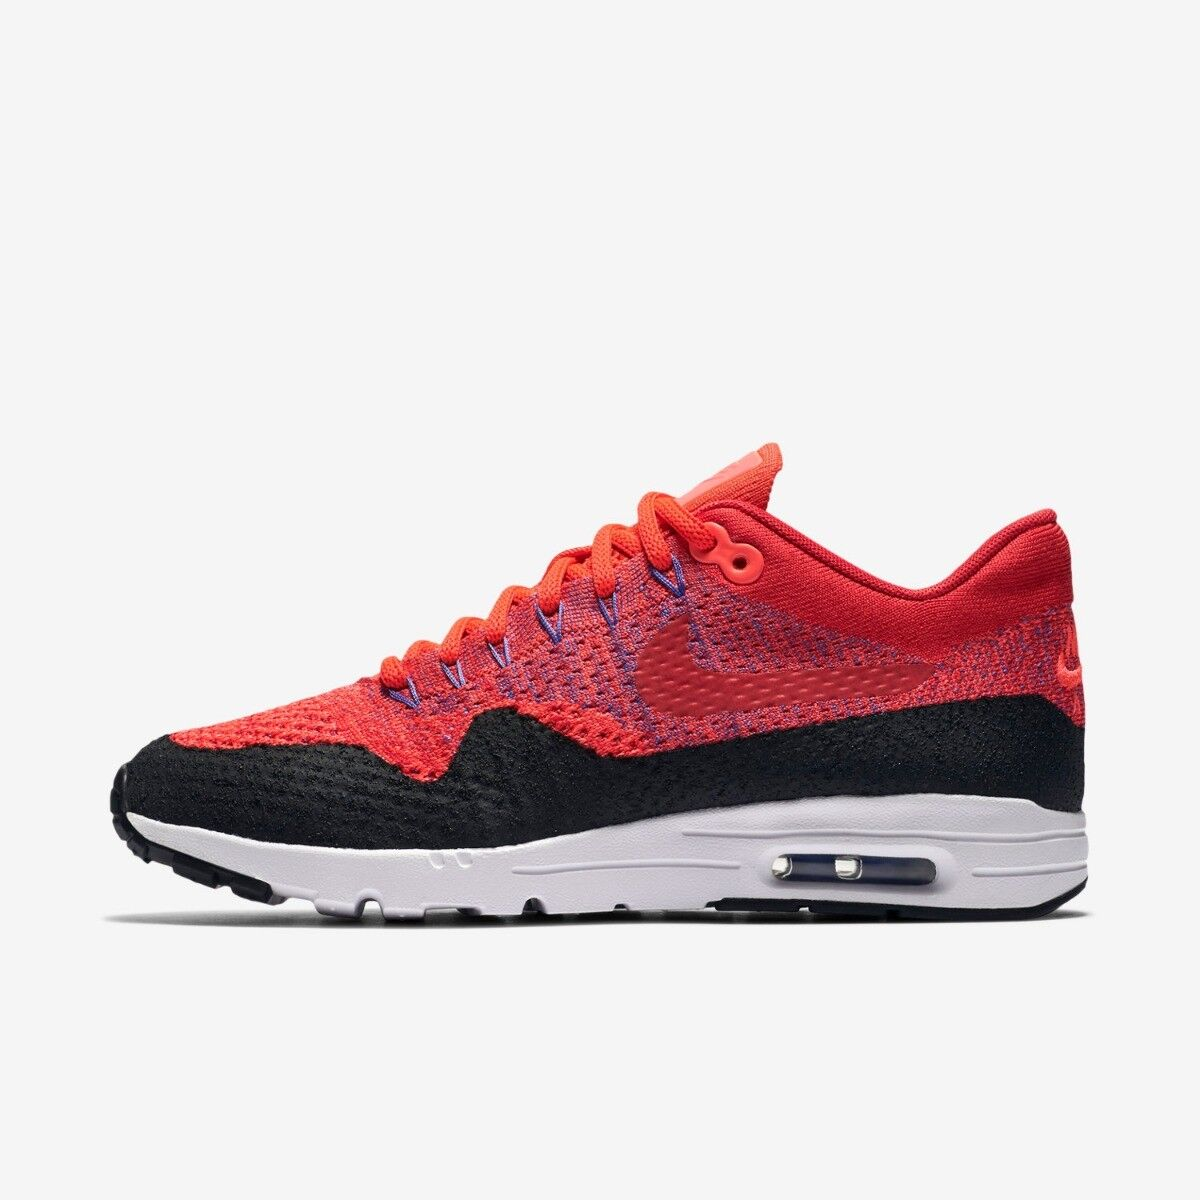 NIKE WOMENS AIR MAX 1 1 MAX FLYKNIT UK SIZE 3.5 - 5 RUNNING TRAINER SHOE NEW RED RUN cf8ab2